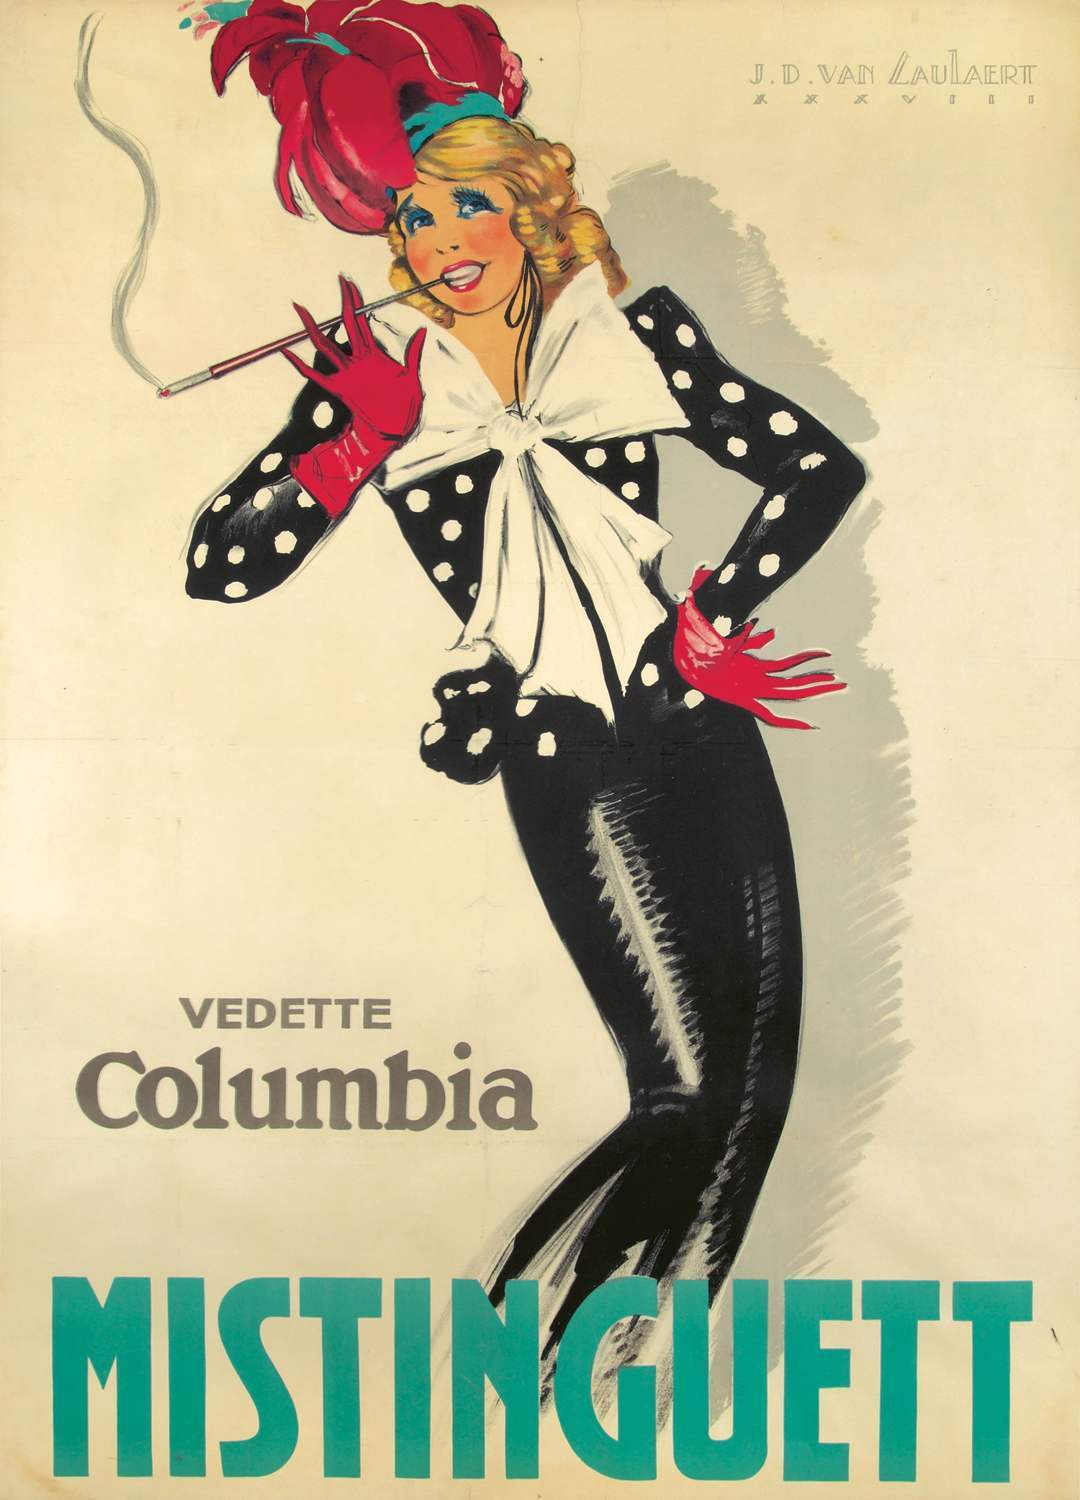 Mistinguett by Jean-Dominique Van Caulaert, 1938